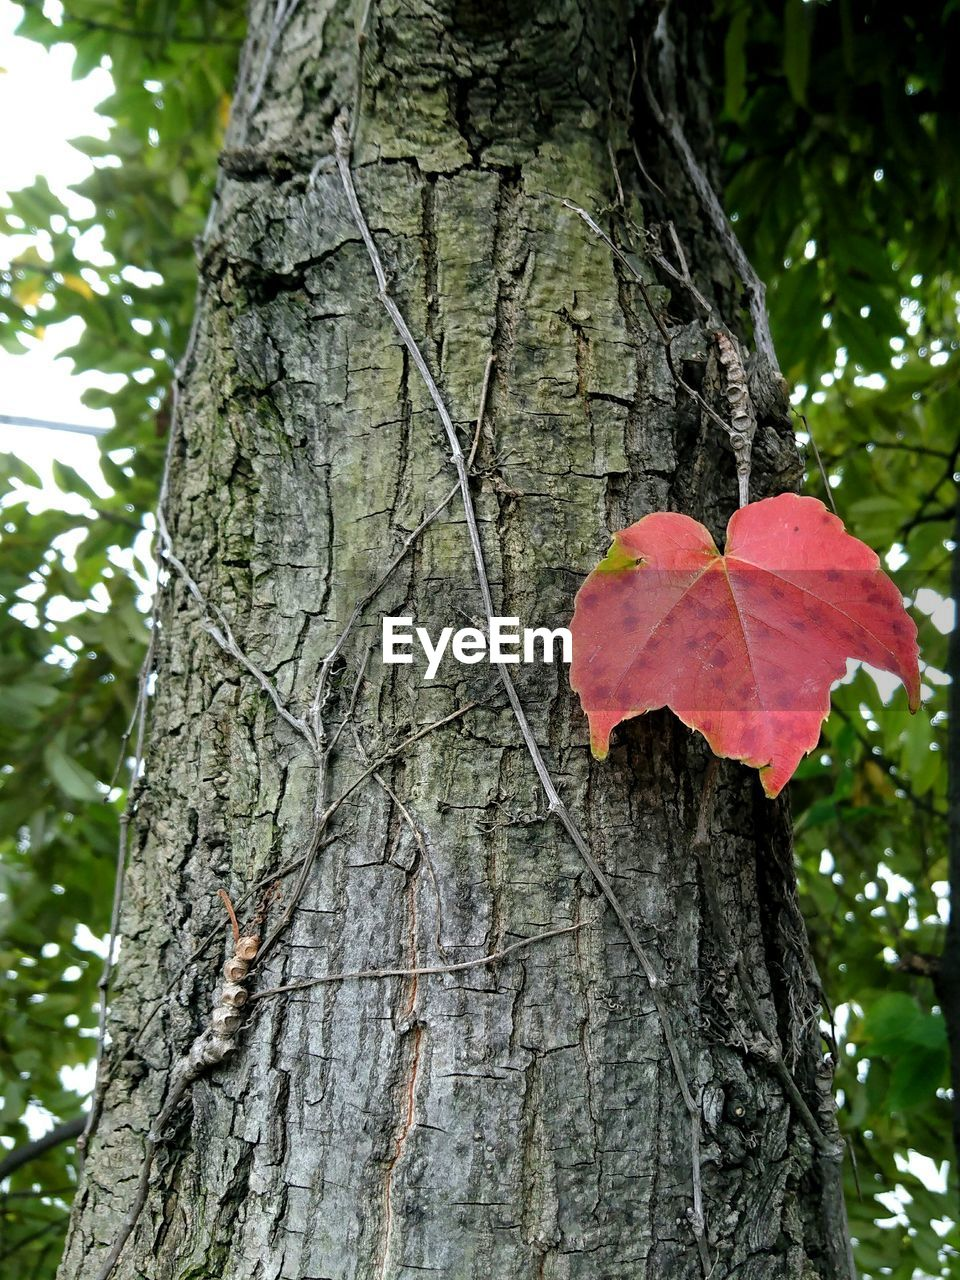 Eye4photography  EyeEm Nature Lover Nature Beauty In Nature Leaf Autumn Change Plant Leaves Light And Shadow Getting Inspired Taking Photos Growth Tree No People Tranquility Relaxing Red Textured  Yokohama XPERIA